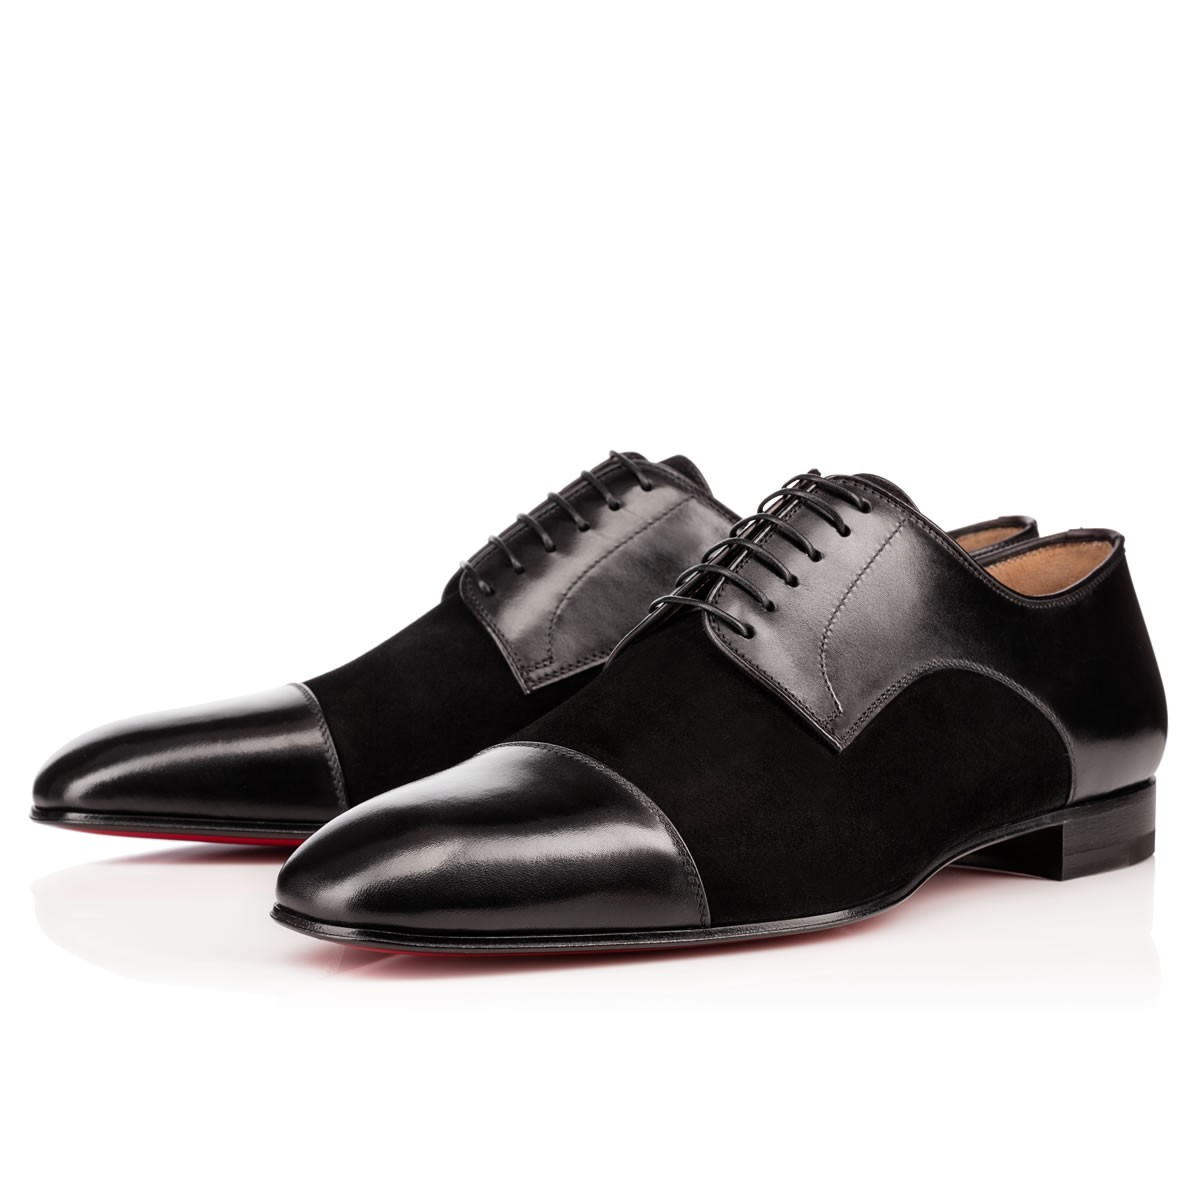 Formal Leather Shoes Offer